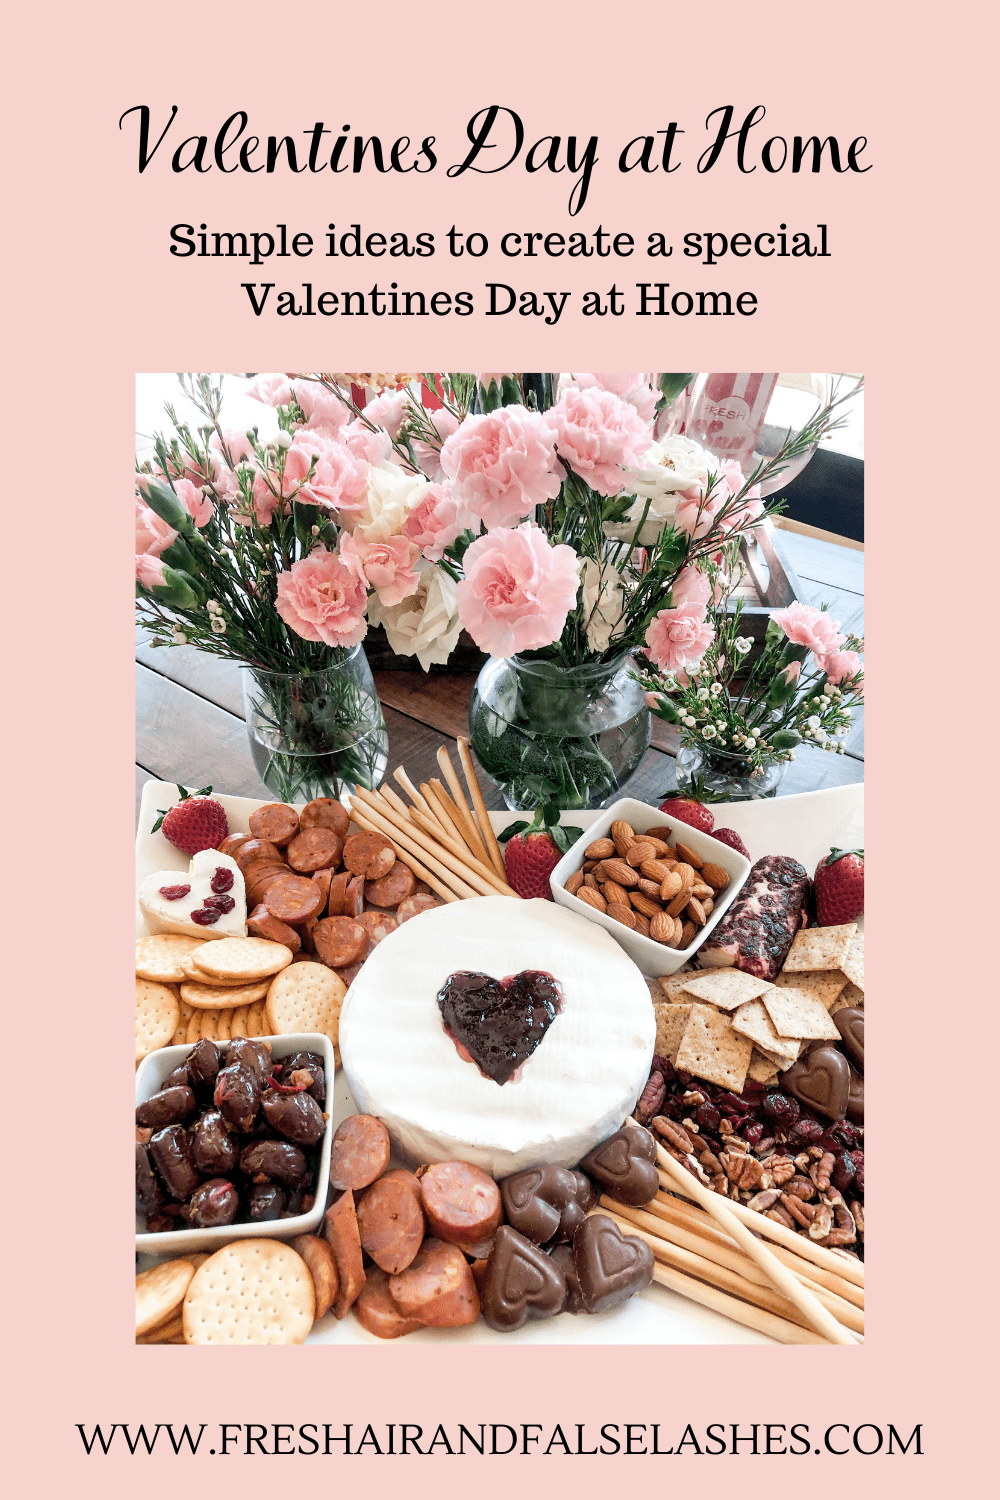 Valentines Day at home. Simple ideas to create a special day.